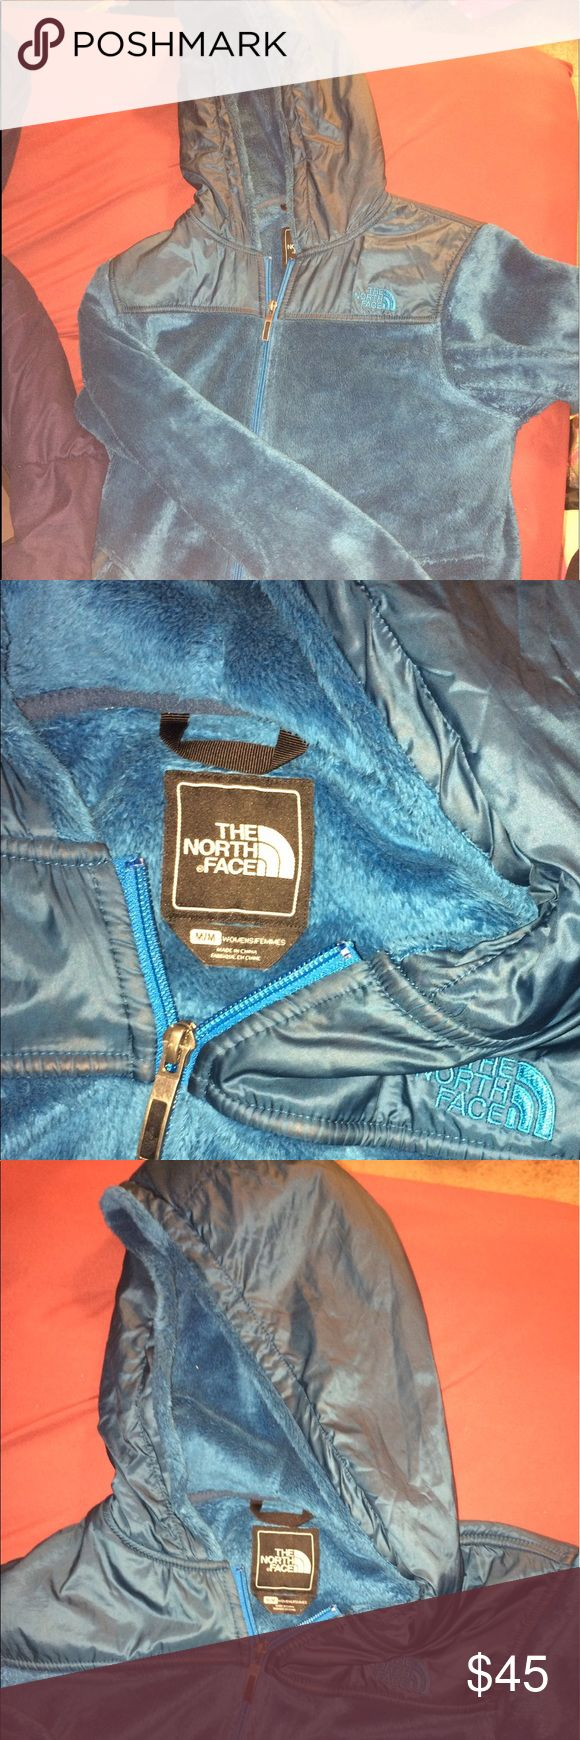 North Face Jacket Great Condition Blue North Face Fleece Jacket with hood! Moving south and have no use for it. North Face Jackets & Coats